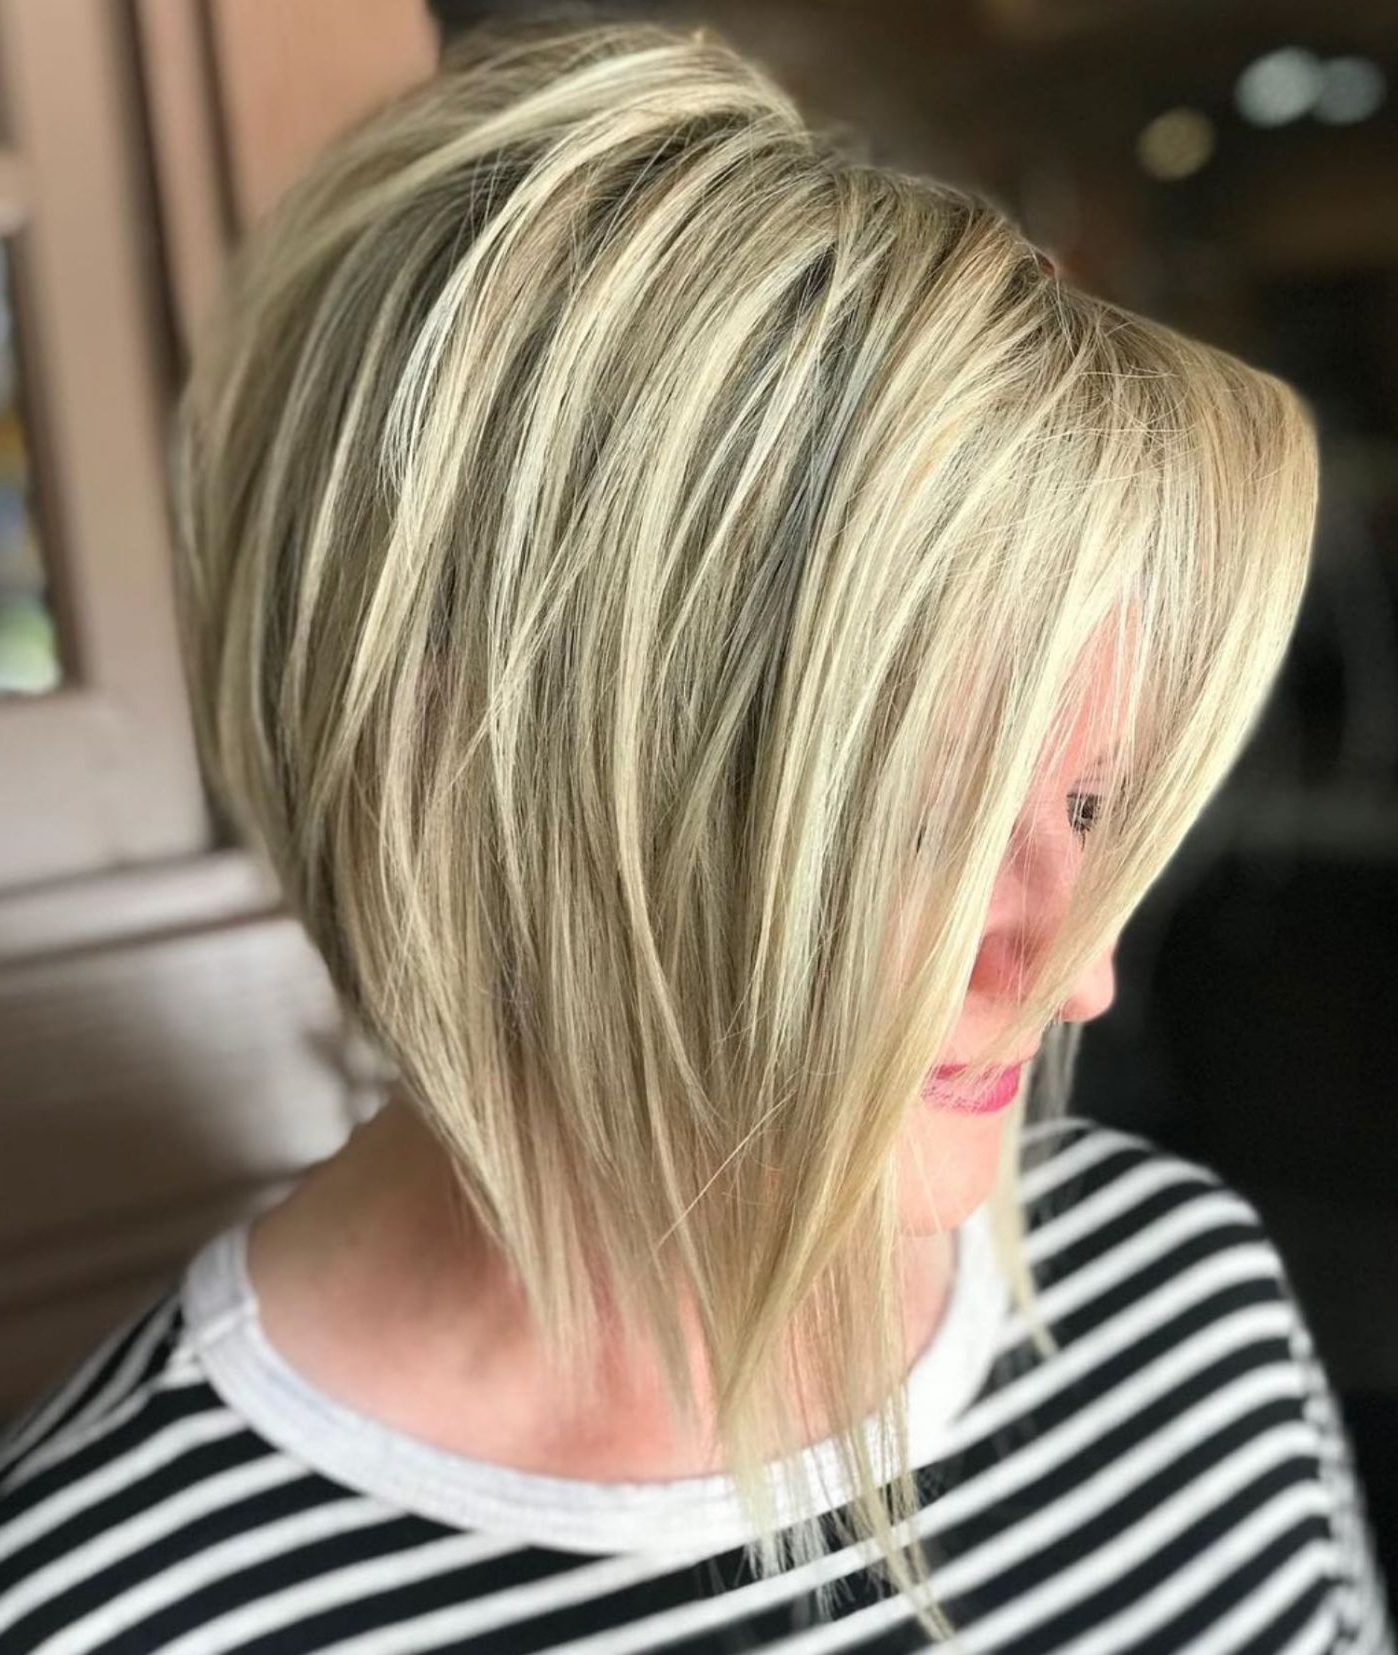 Most Up To Date Sassy Angled Blonde Bob Hairstyles Intended For Pin On Haircuts (View 10 of 20)